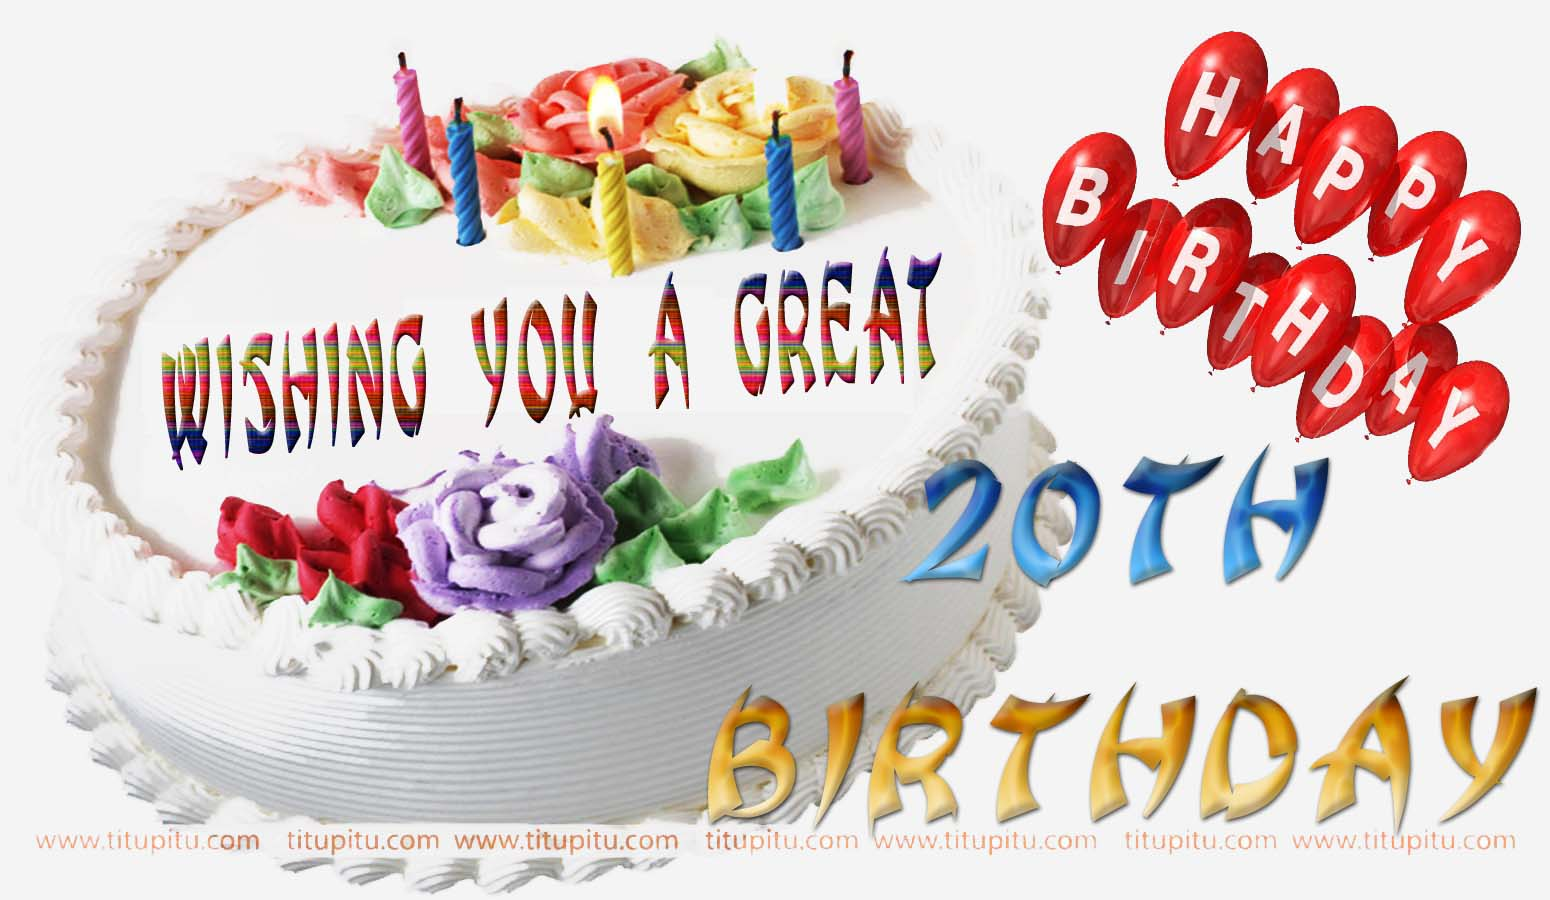 20th birthday wishes wallpapers wishesjpg 1550x900